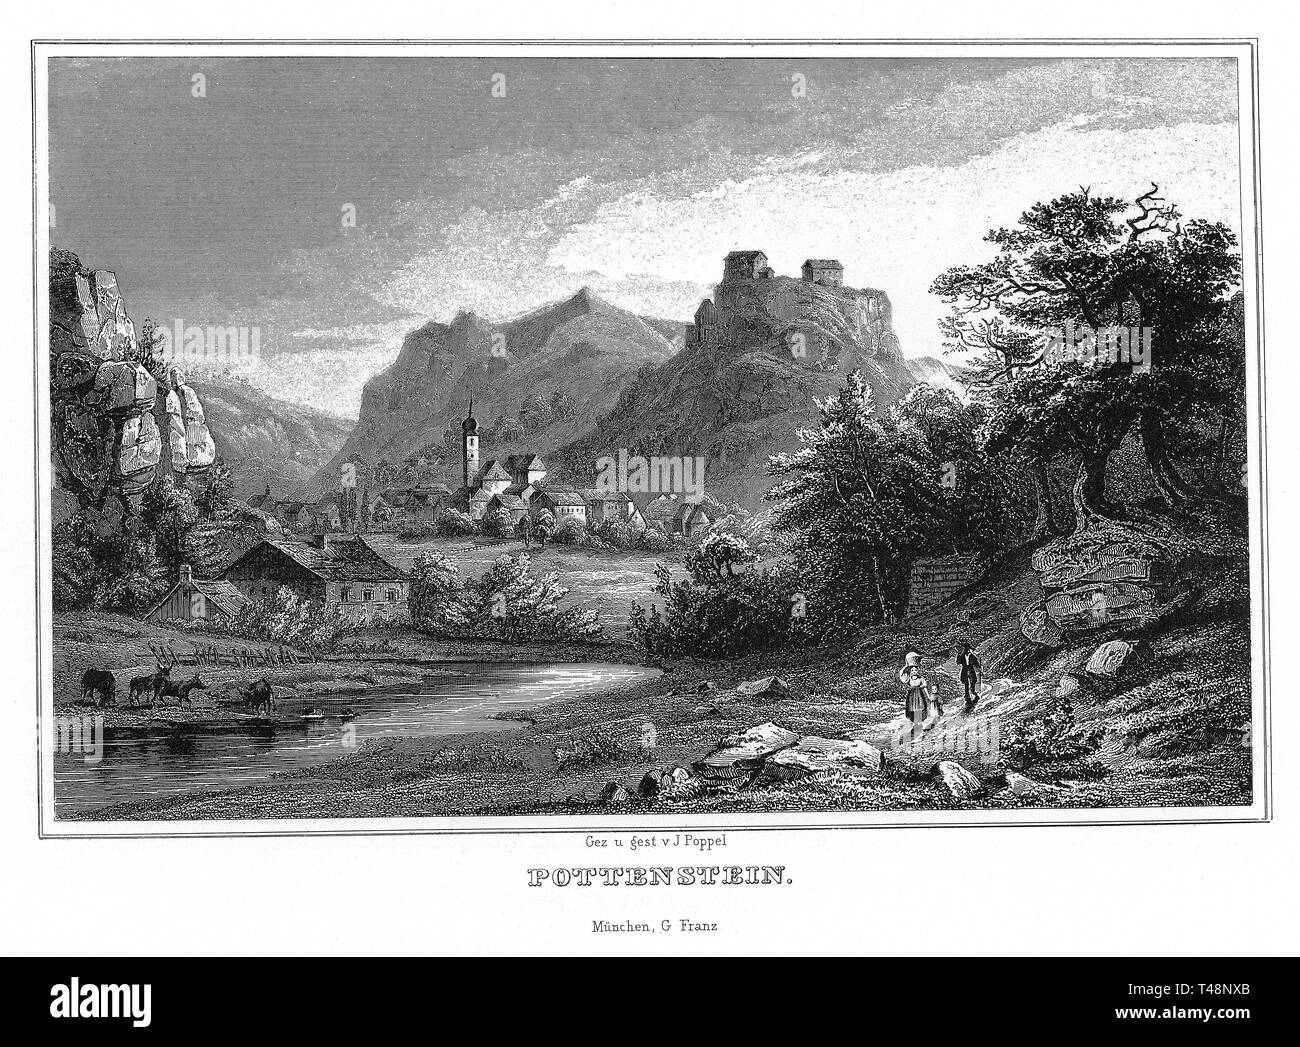 Pottenstein, drawing and steel engraving by J. Poppel, 1840-54, Kingdom of Bavaria, Germany - Stock Image